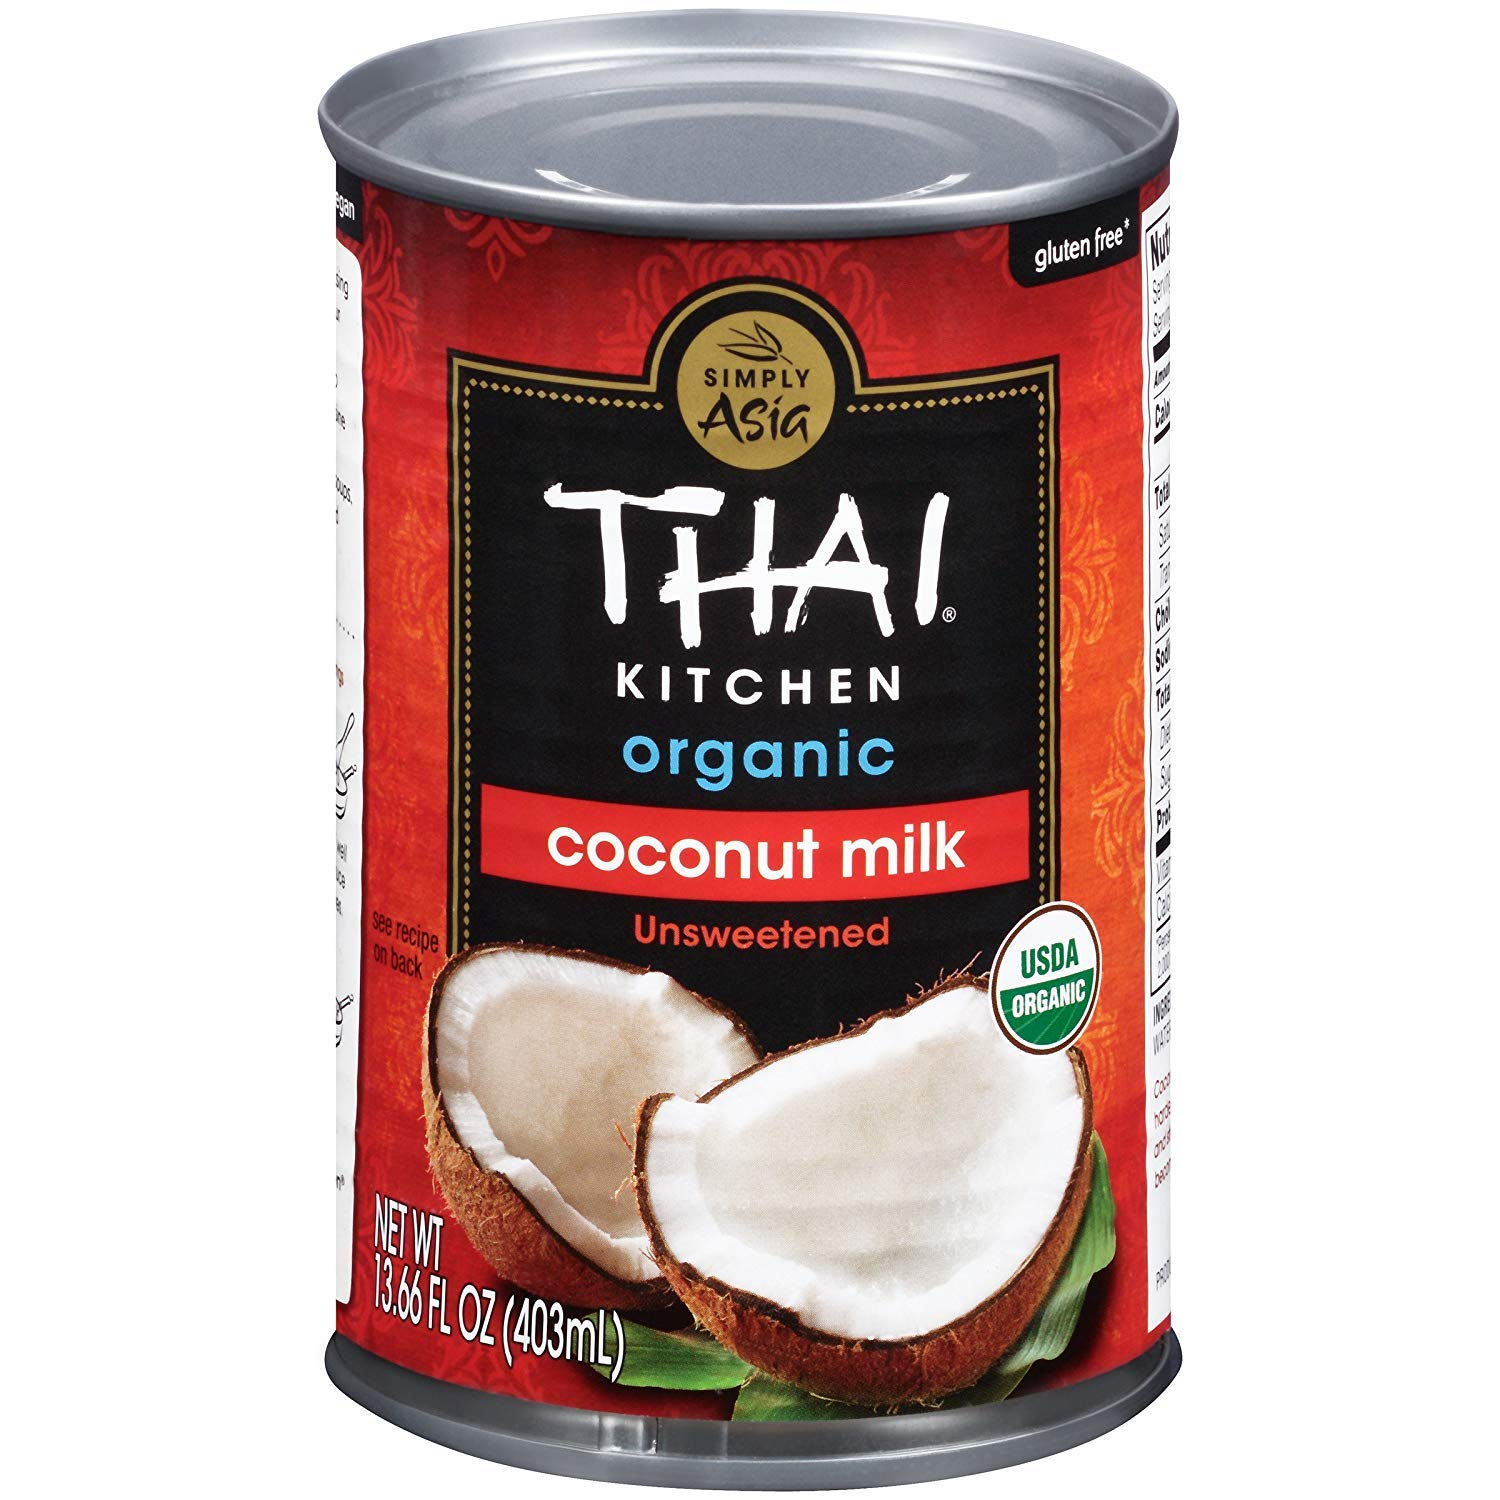 Thai Kitchen Organic Unsweetened Coconut Milk, 13.66 fl oz, (Pack of 12)